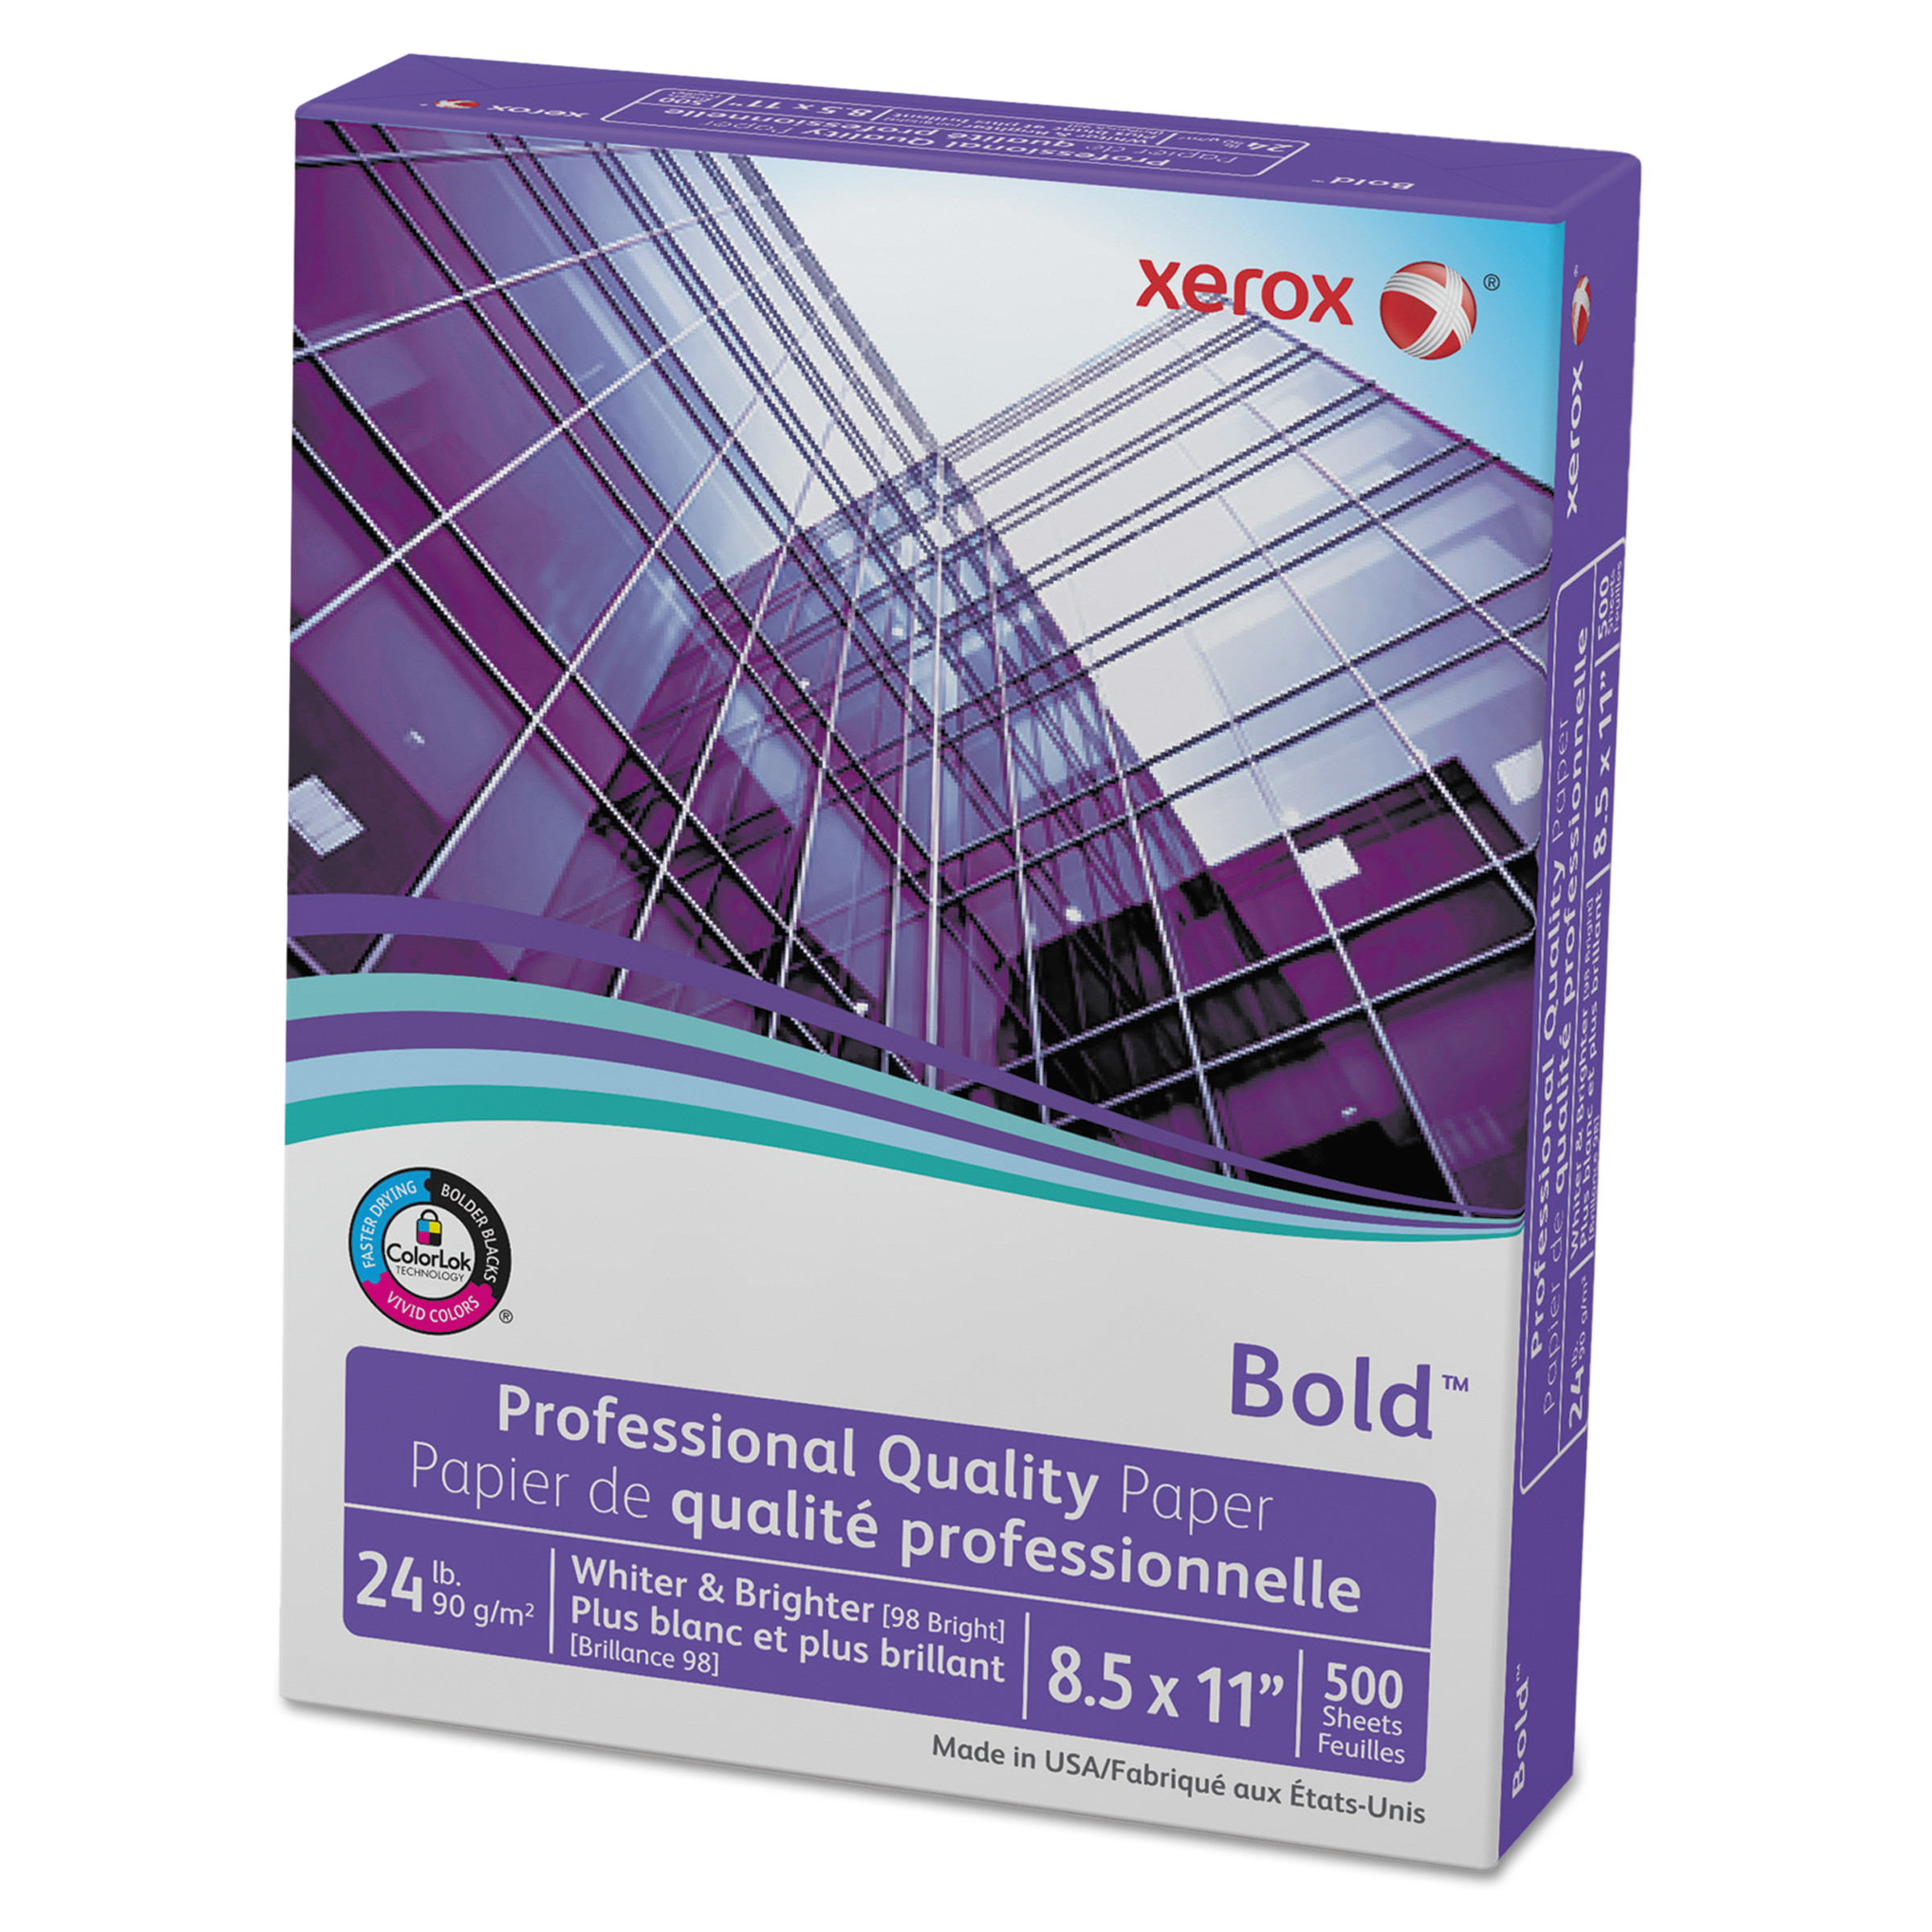 Xerox Bold Professional Quality Paper, 98 Bright, 8 1/2 x 11, White, 500 Sheets/RM